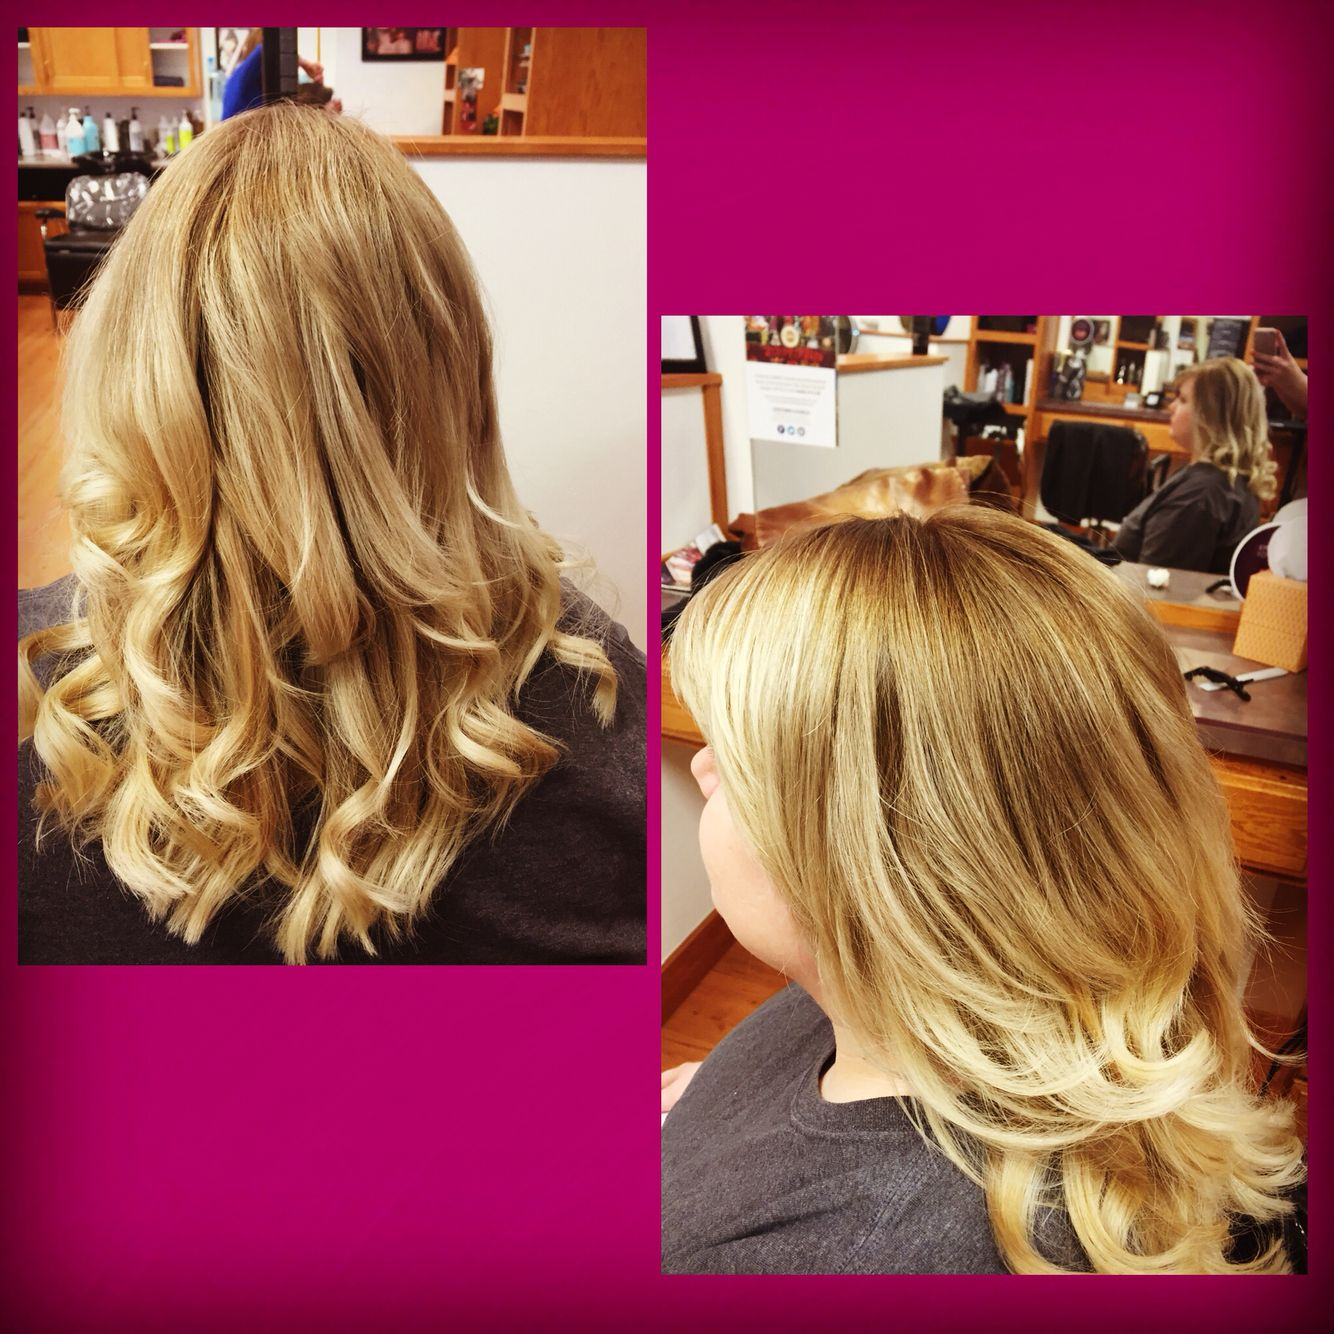 Hair Salons In Missoula Hairstyle For Daily - Haircut missoula